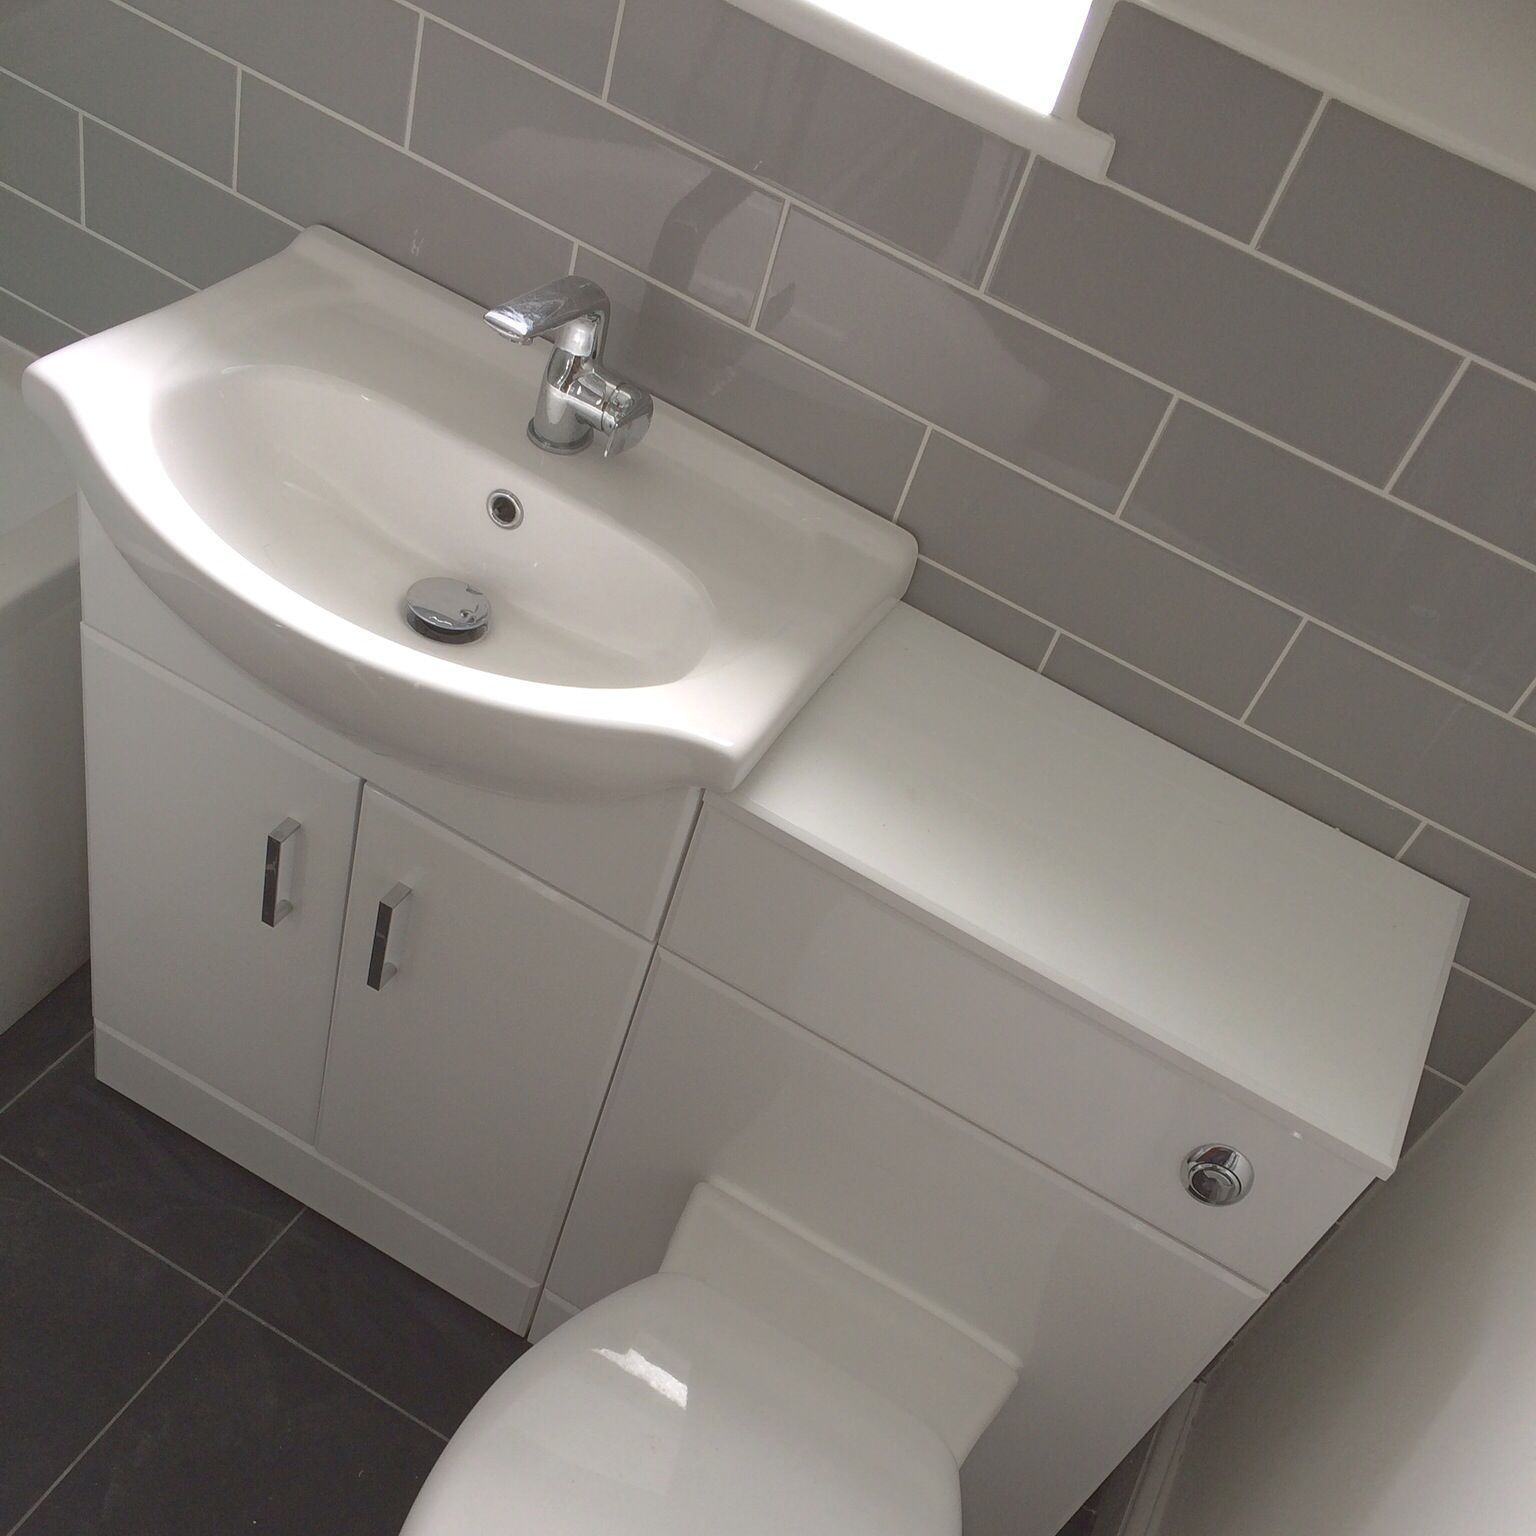 Beautiful Compact Basin And Wc On Gloss White Vanity Unit Stunning Linear Grey Brick Style Tiles Fr In 2020 Grey Bathroom Tiles Bathroom Vanity Units White Vanity Unit